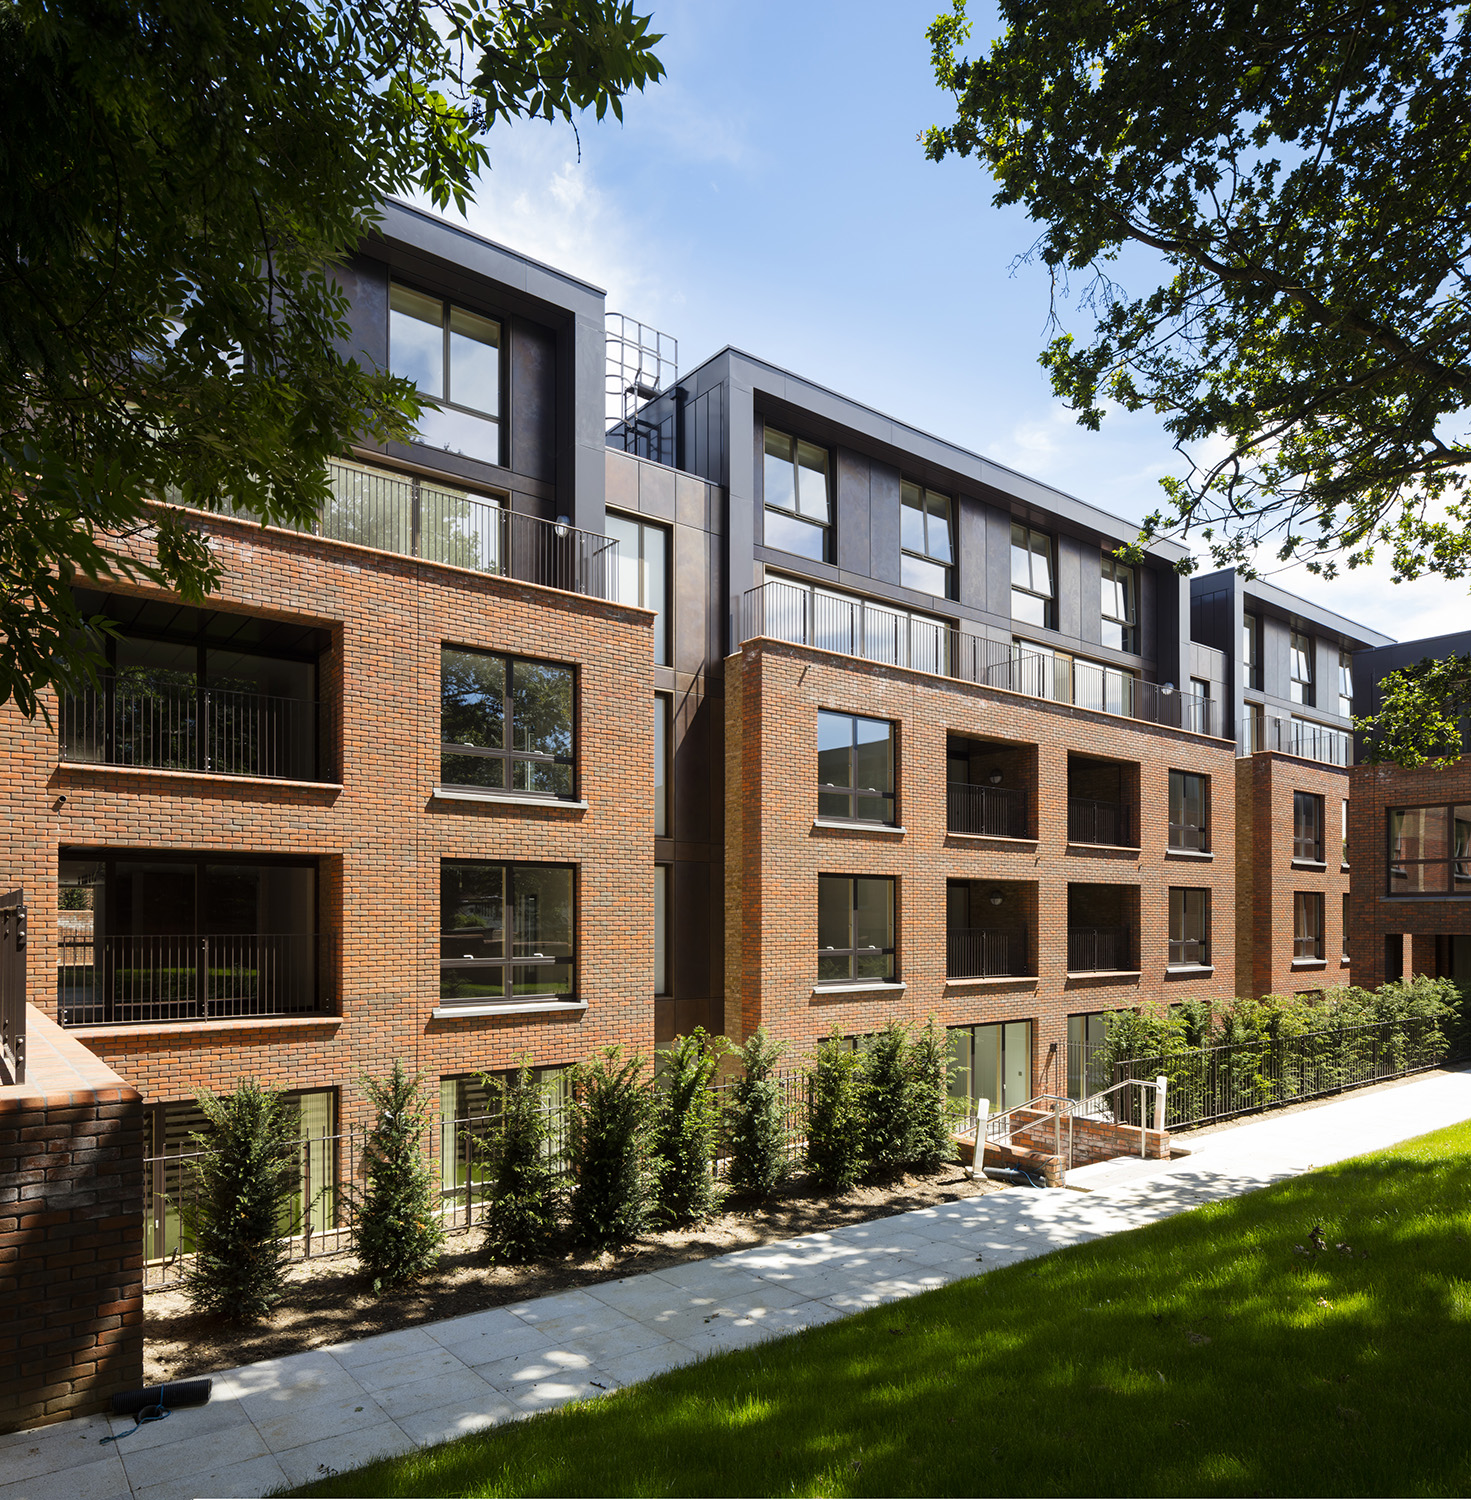 Helenslea Avenue Lts Architects